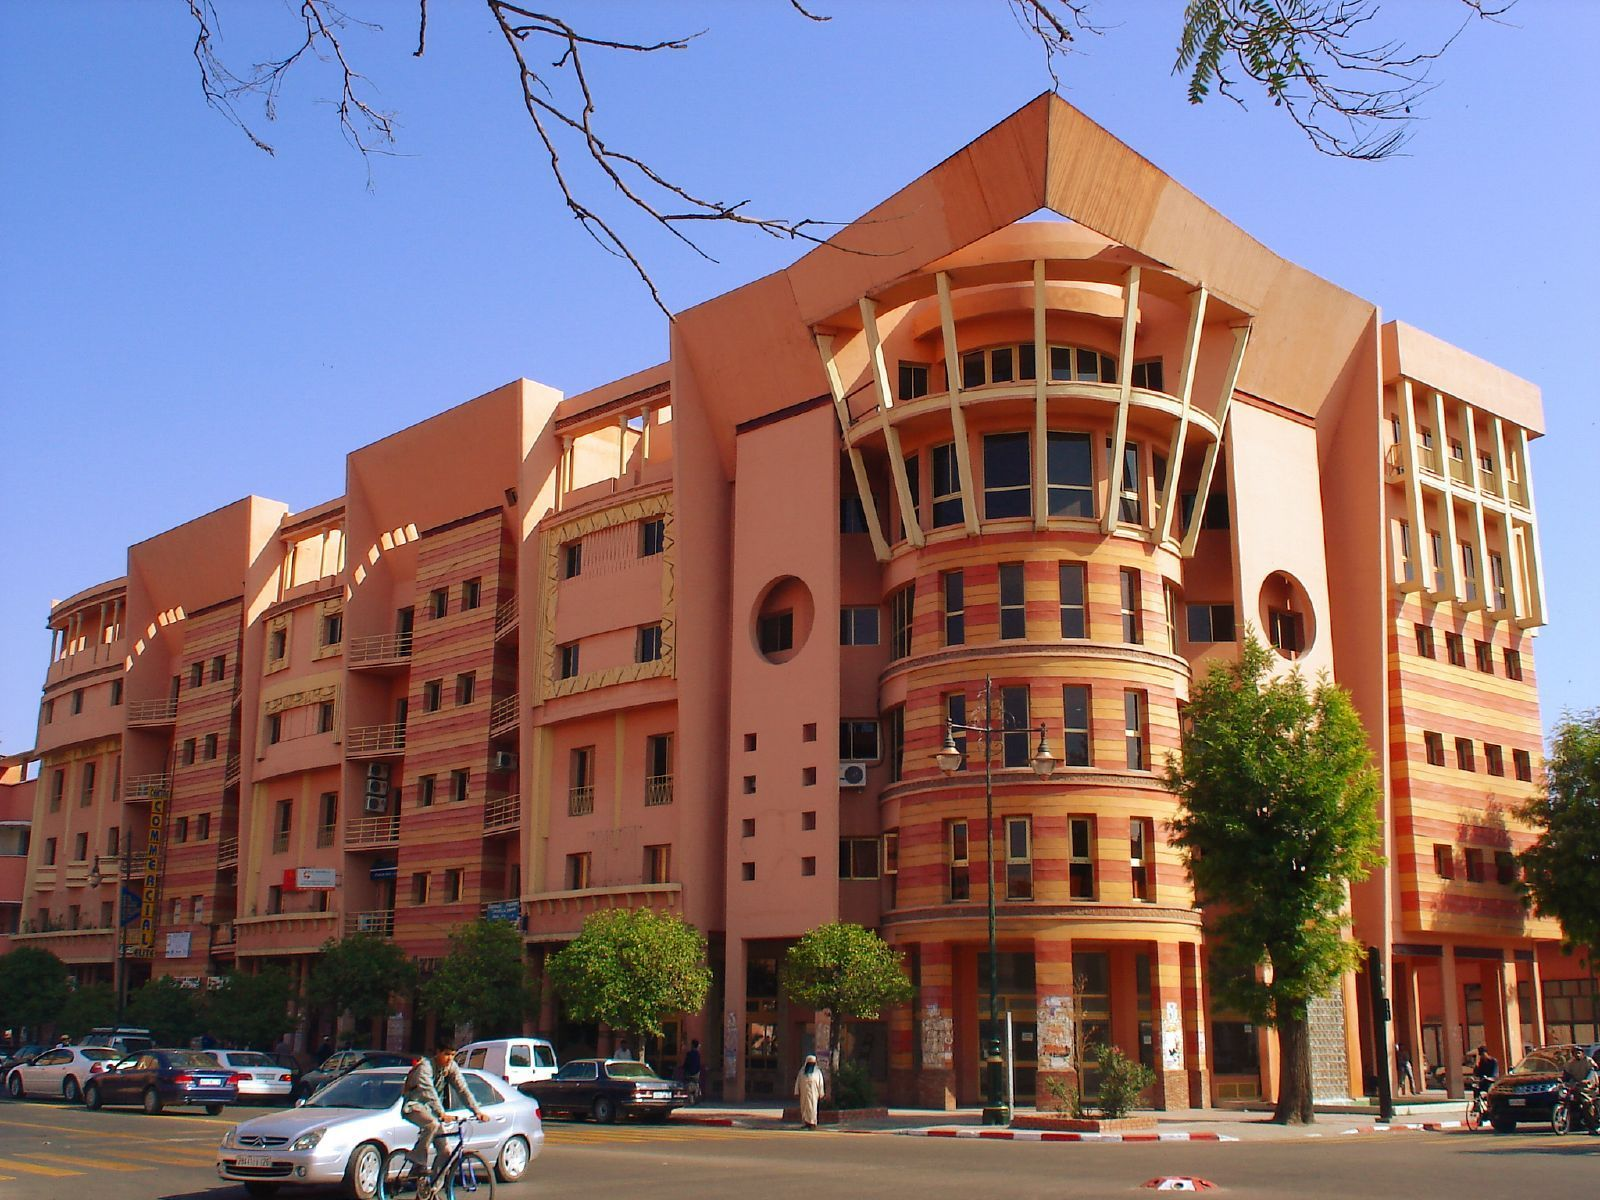 Investment in Morocco: Why invest in Marrakech?